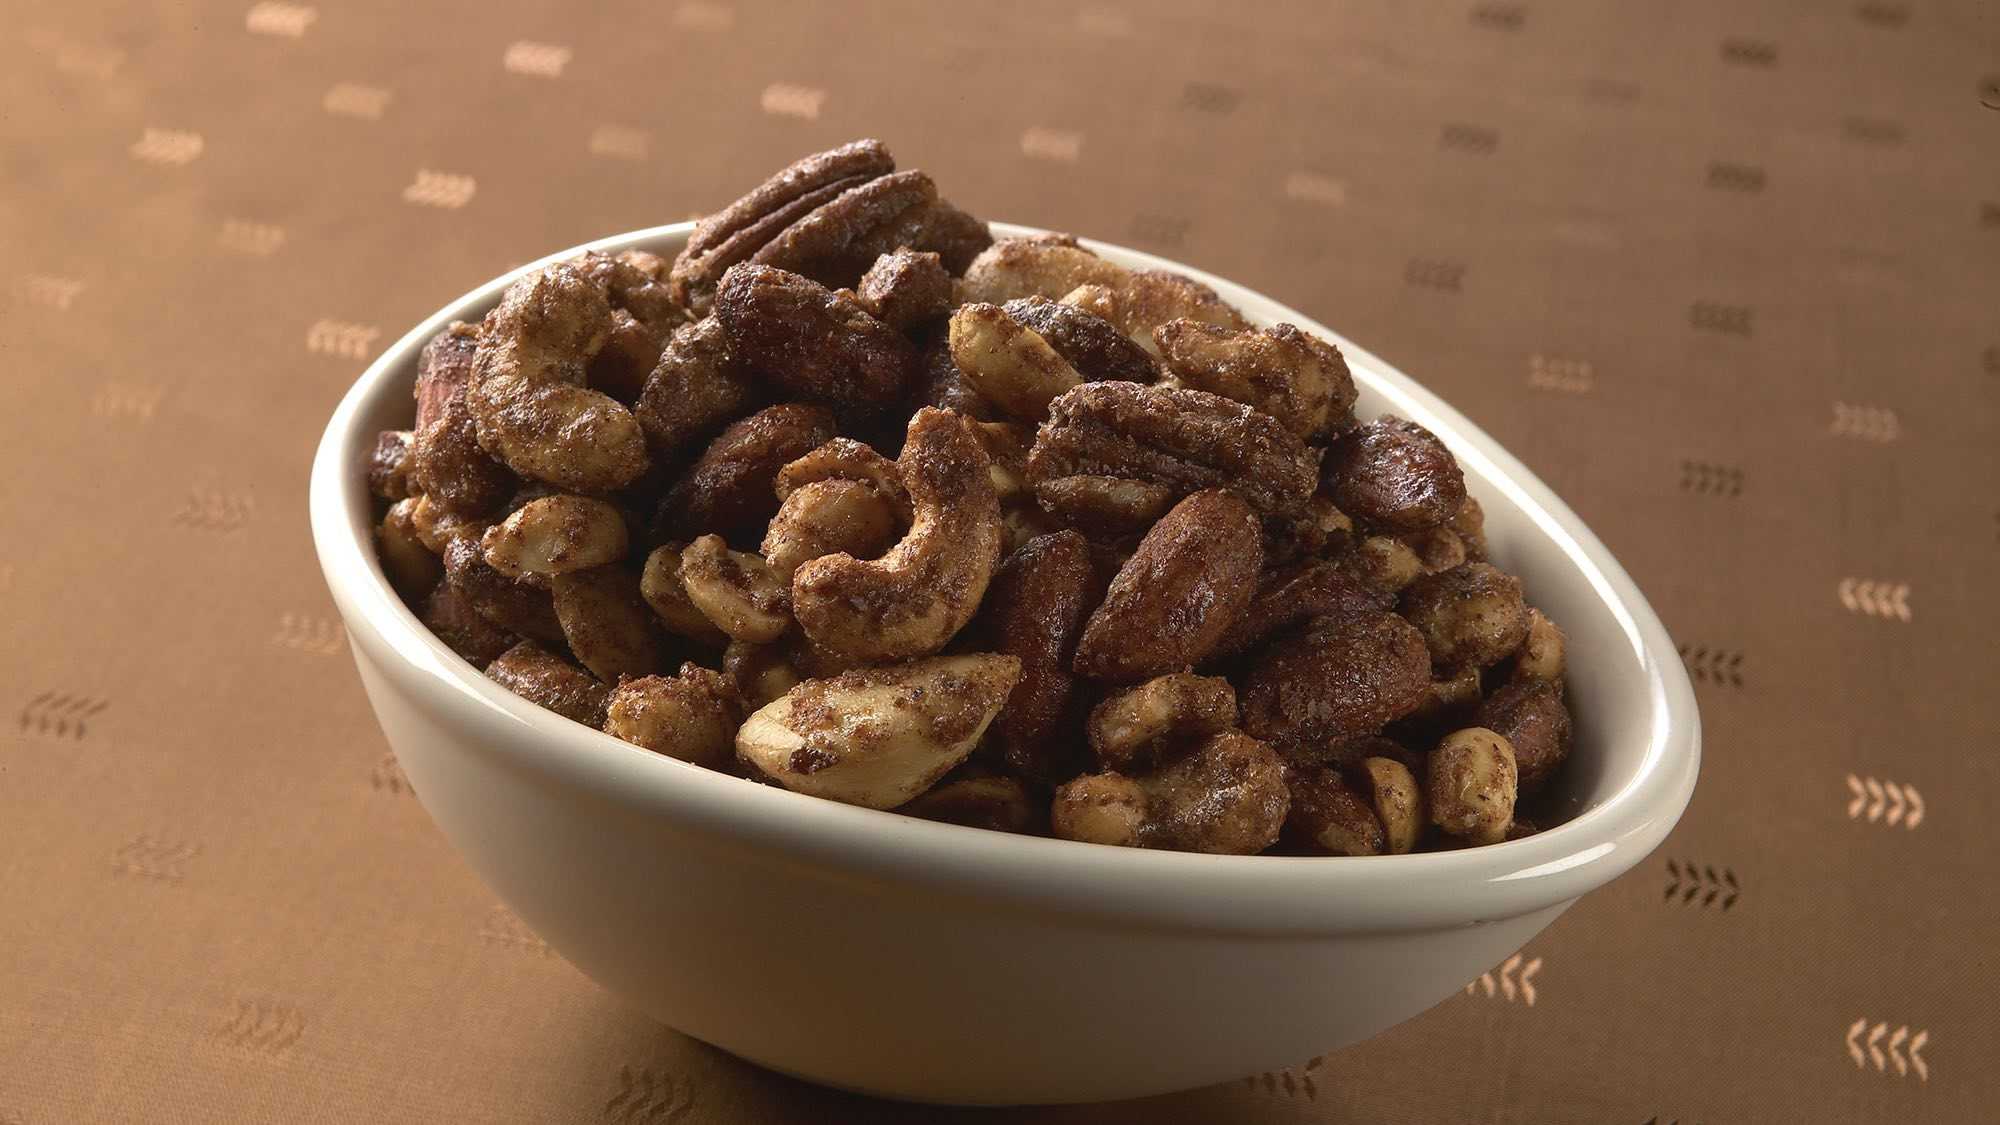 McCormick Spiced Nuts